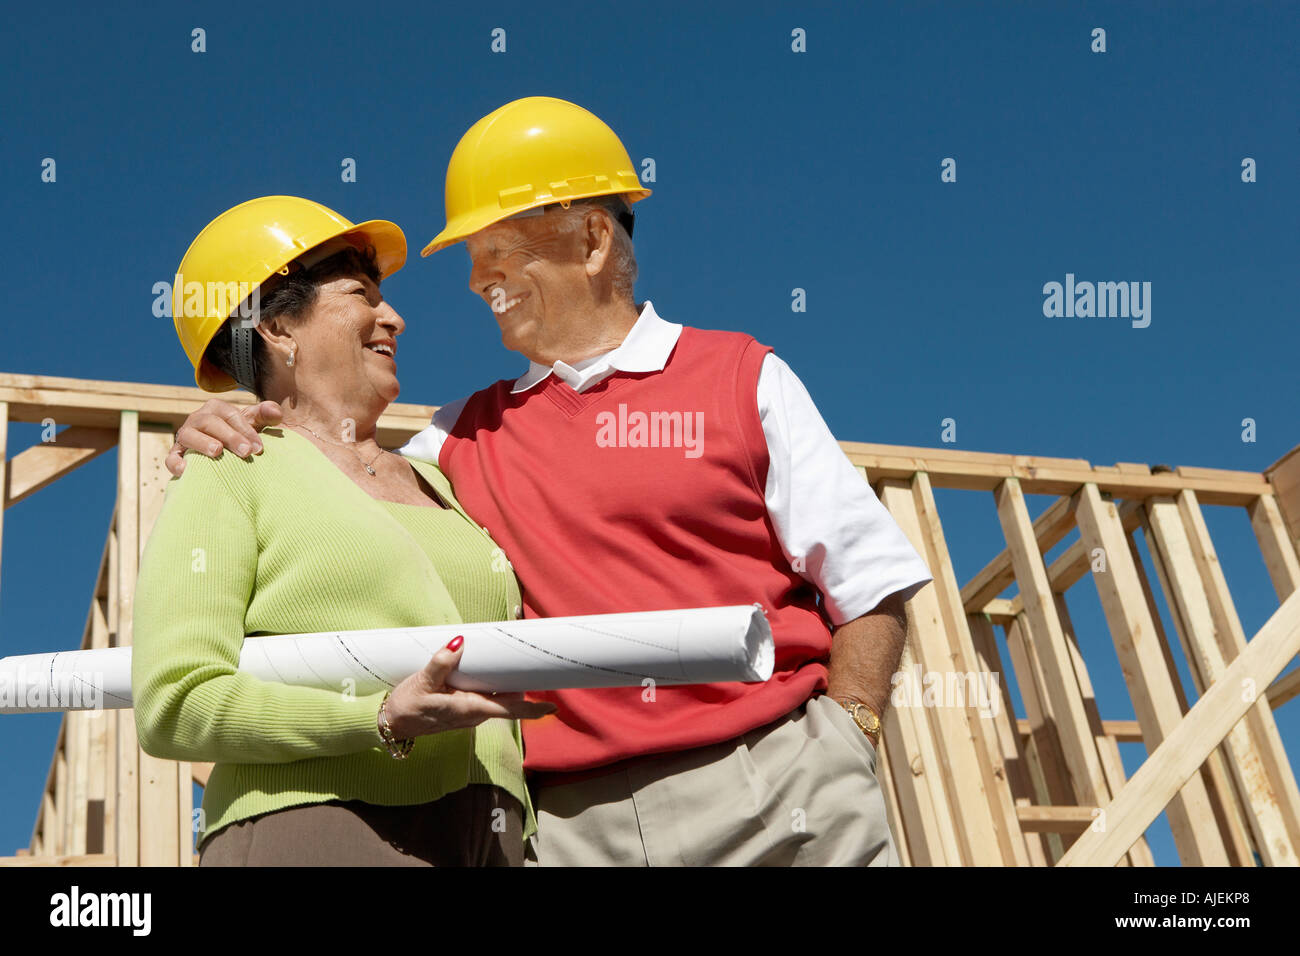 Couple in front of house being built, half-length - Stock Image